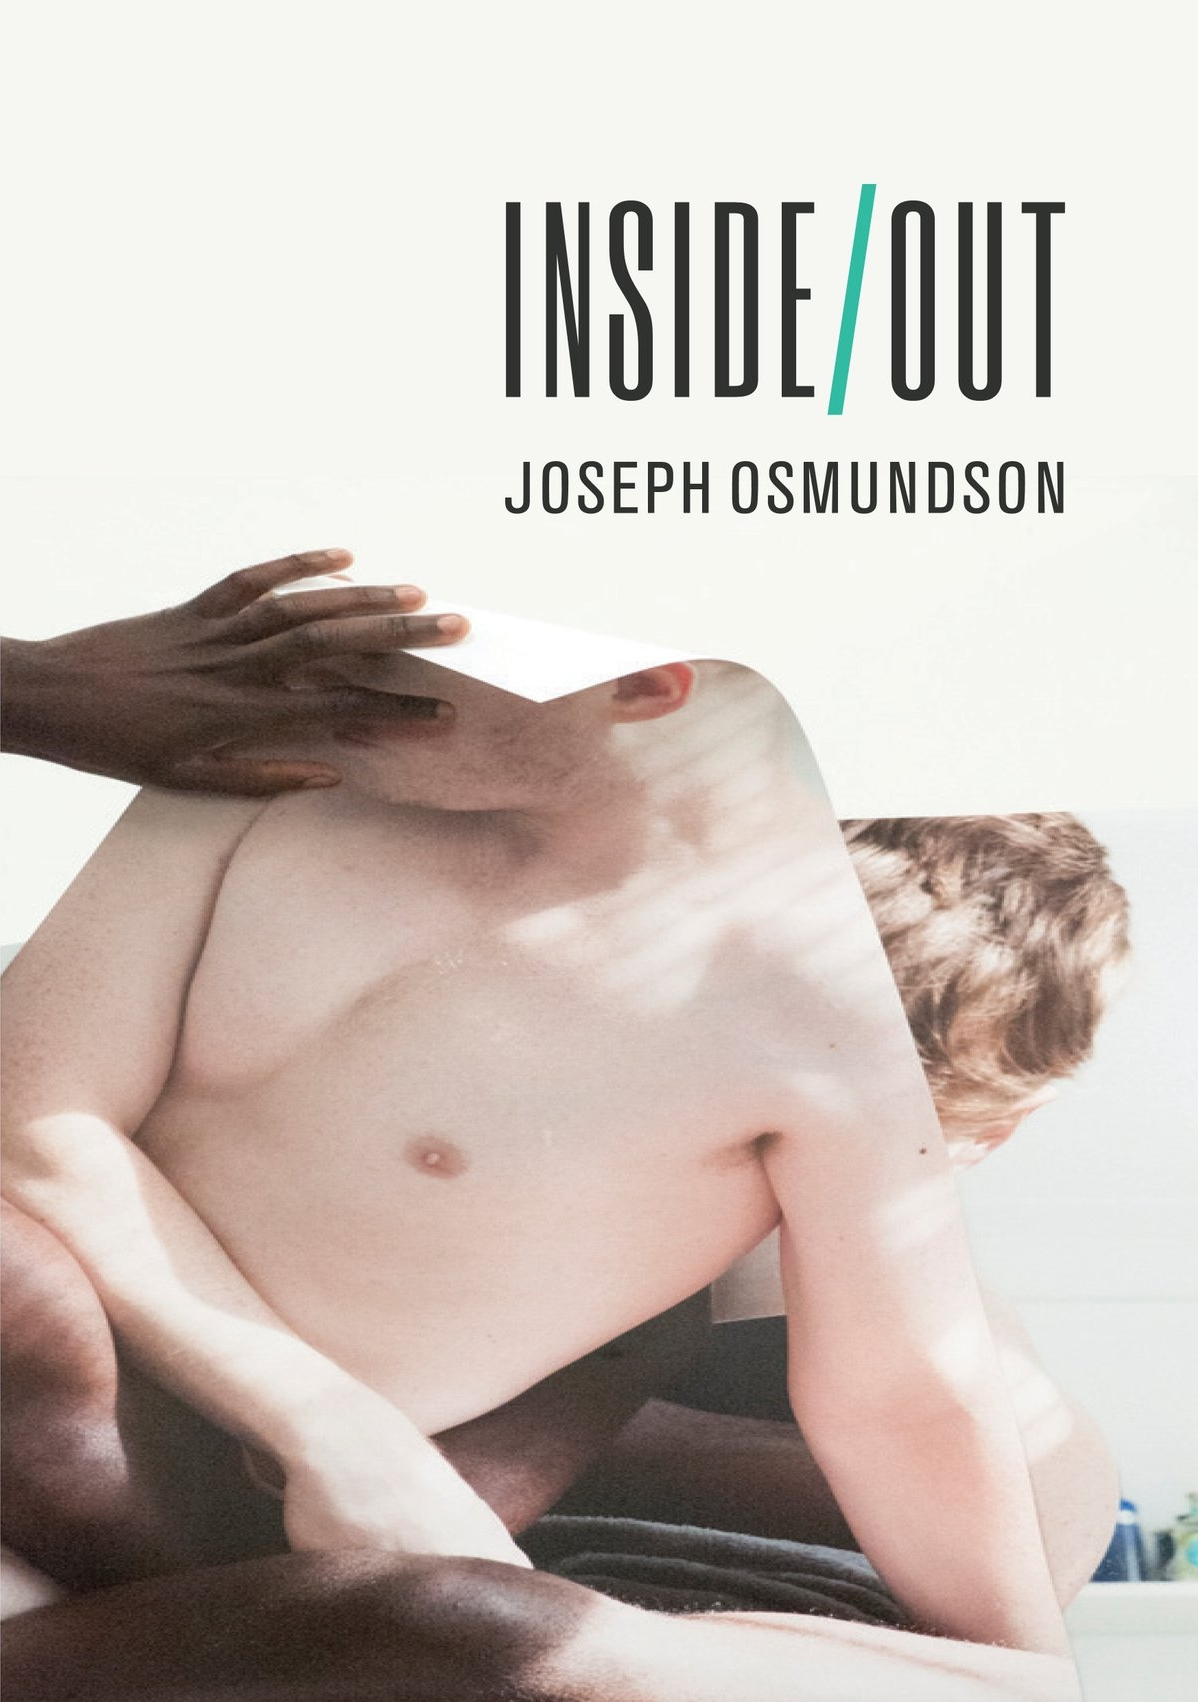 INSIDE/OUT now available -